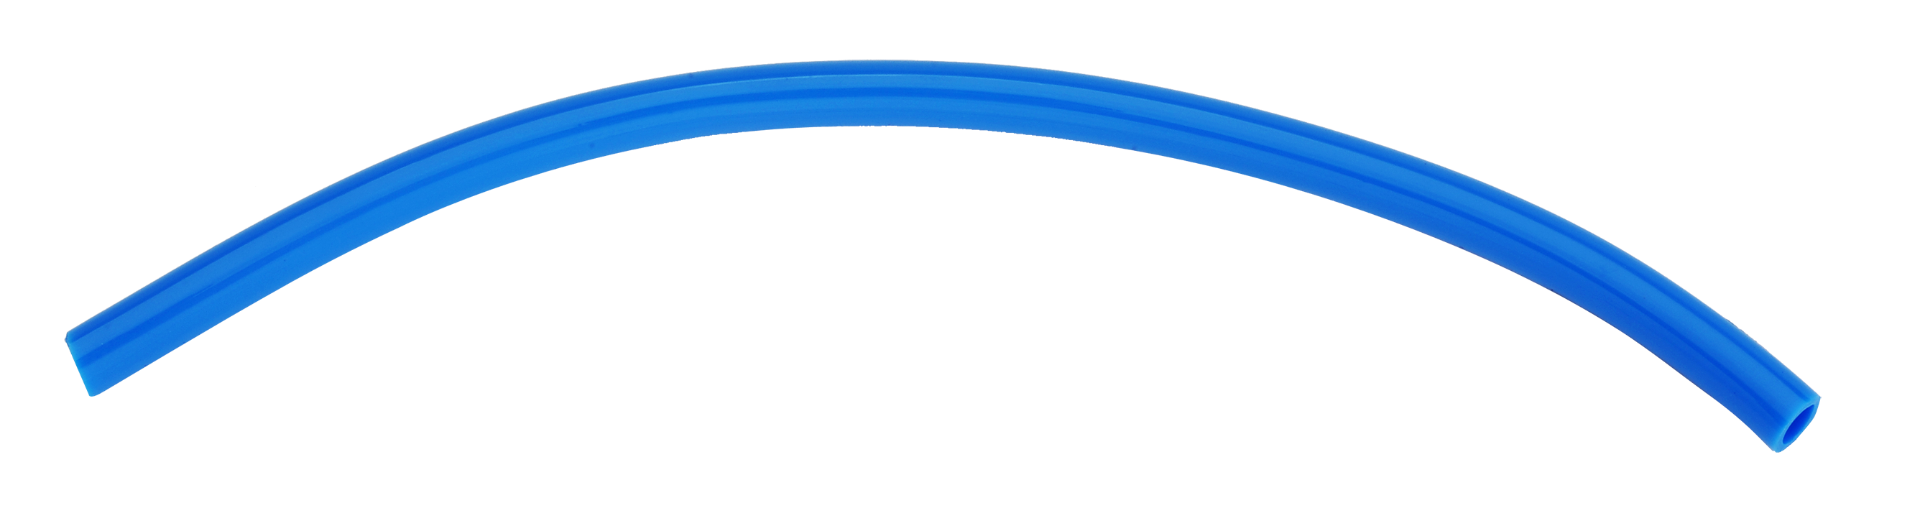 pu-tube-8x125mm-blue